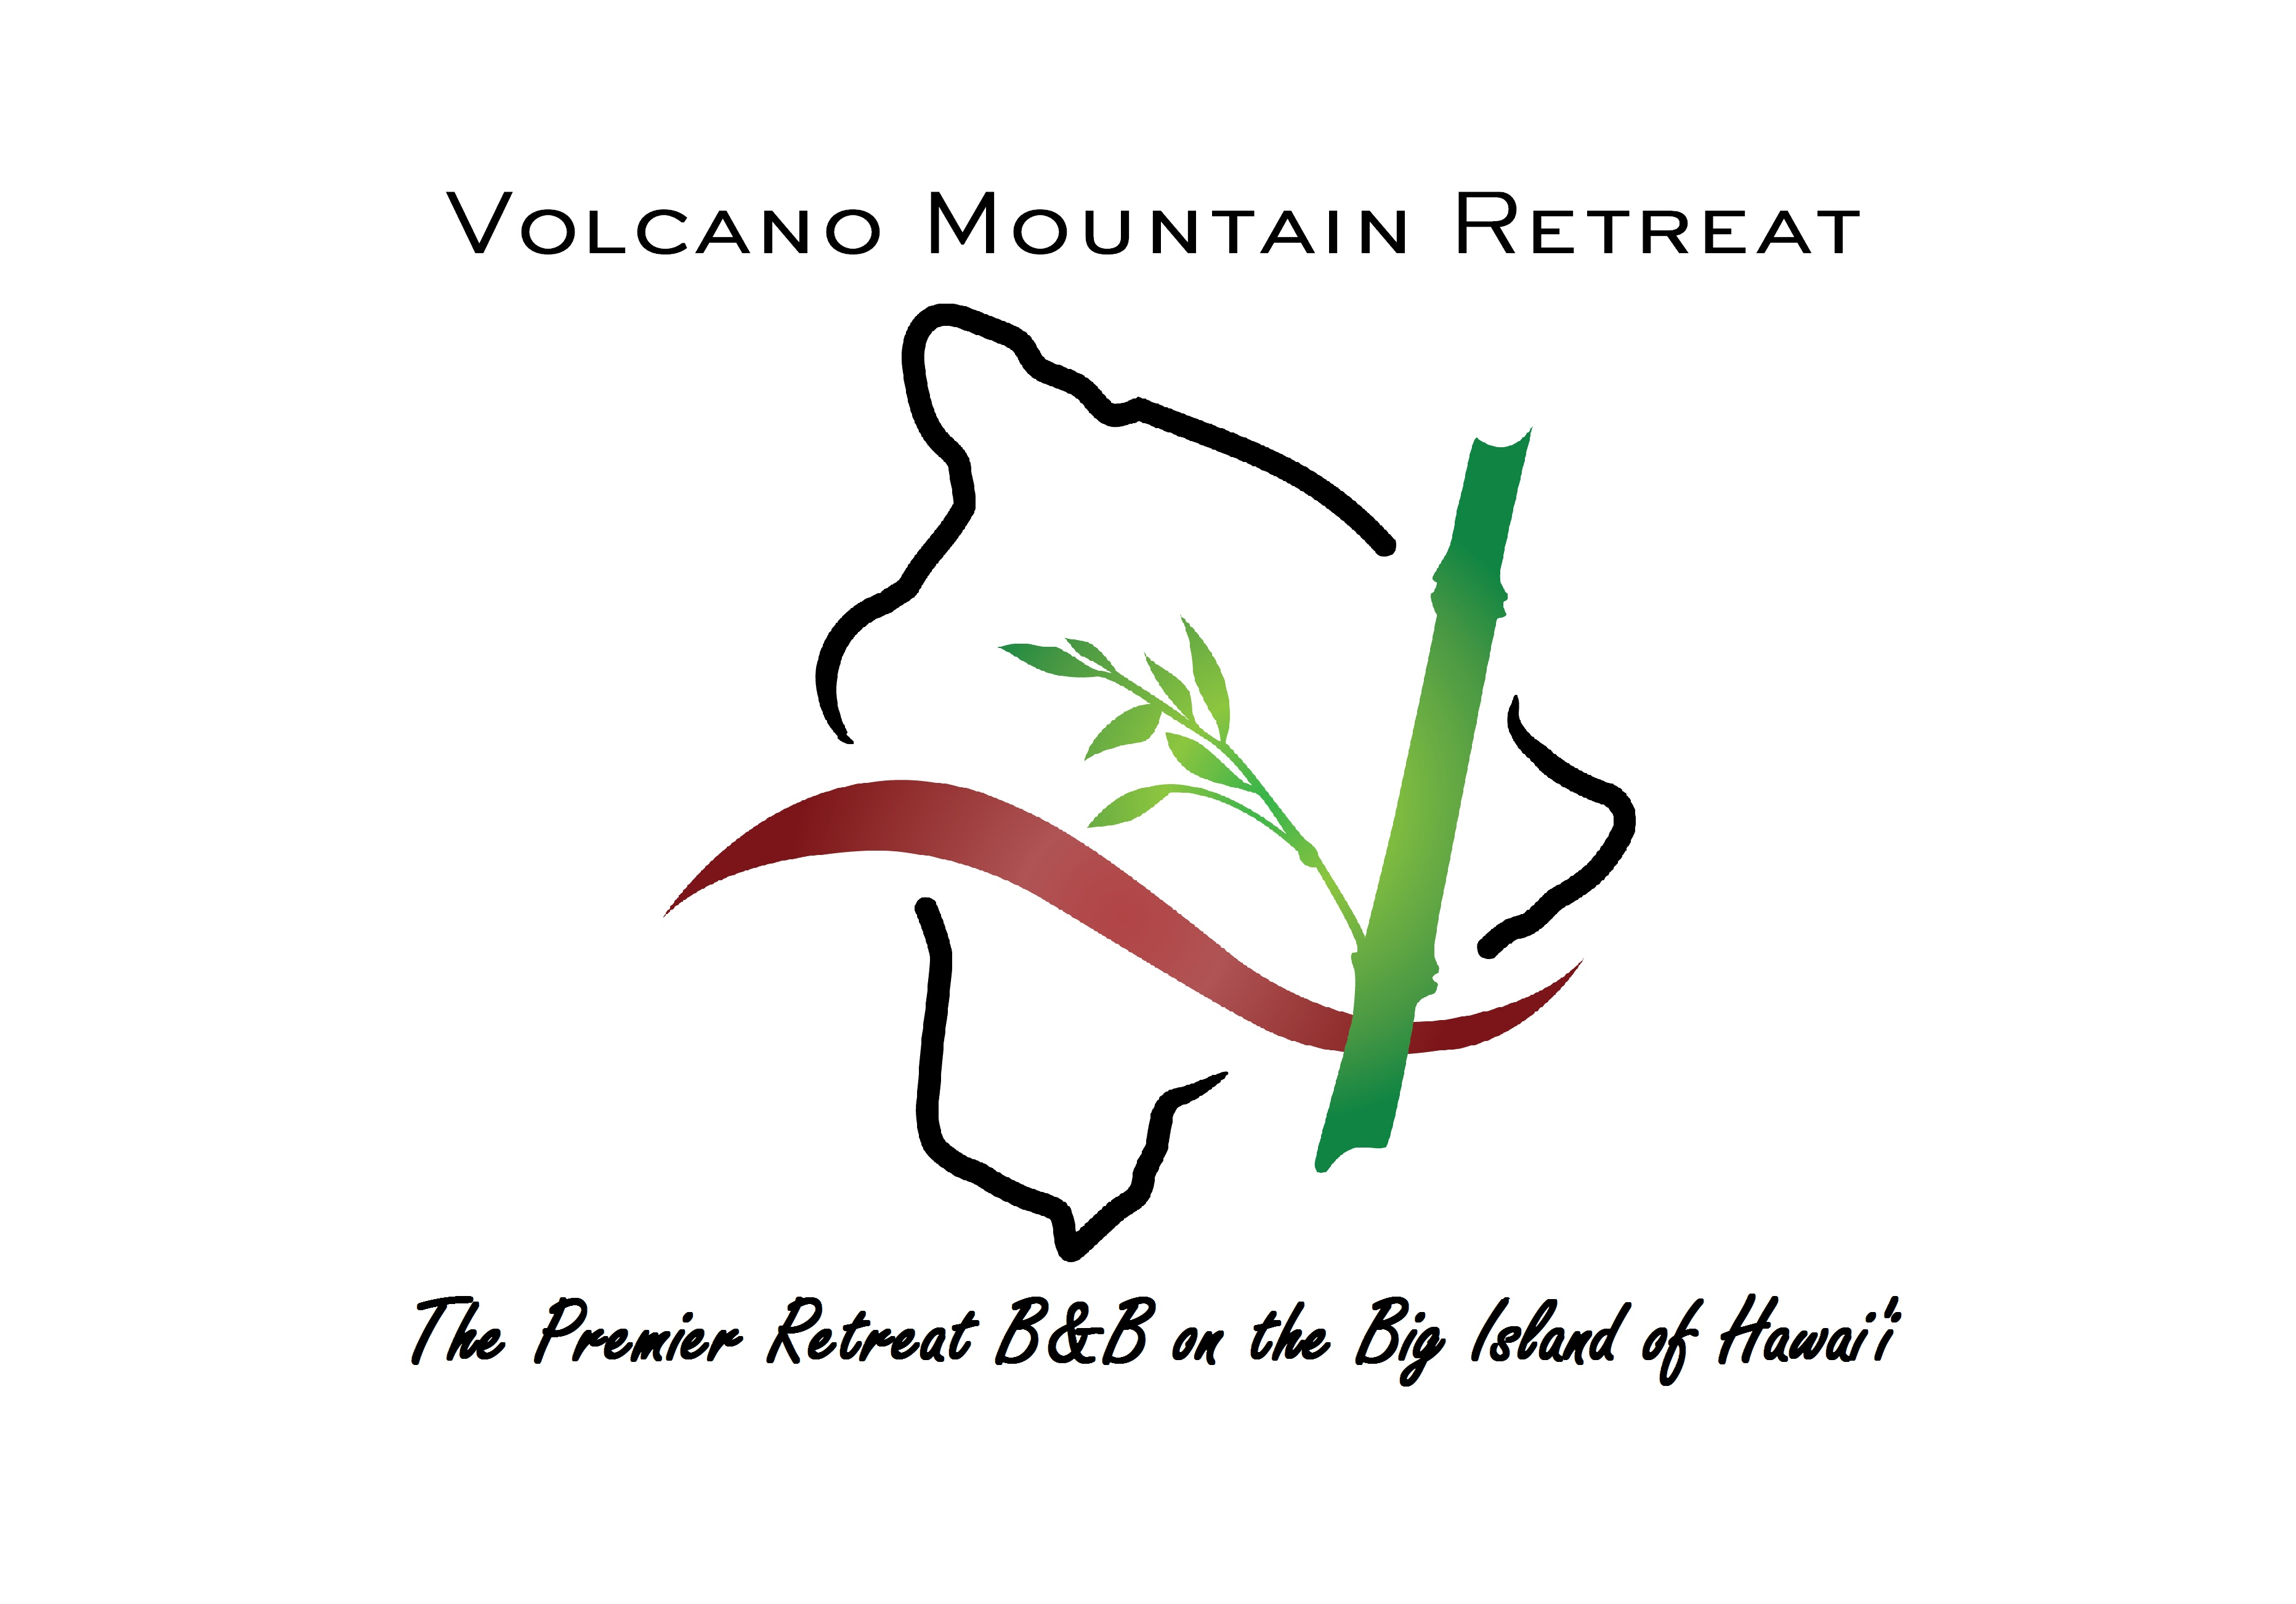 volcano mountain retreat b&b big island hawaii